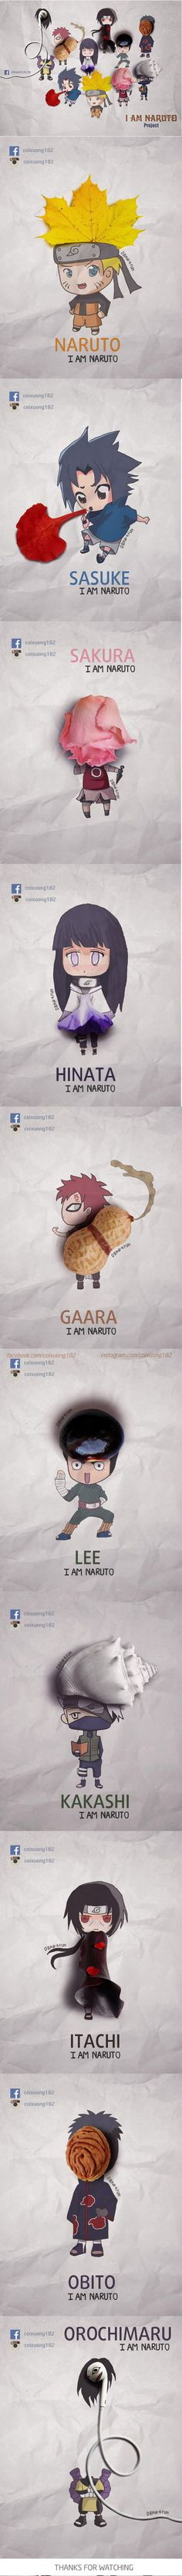 Amazing Naruto's Character by Nguyen Quang Huy